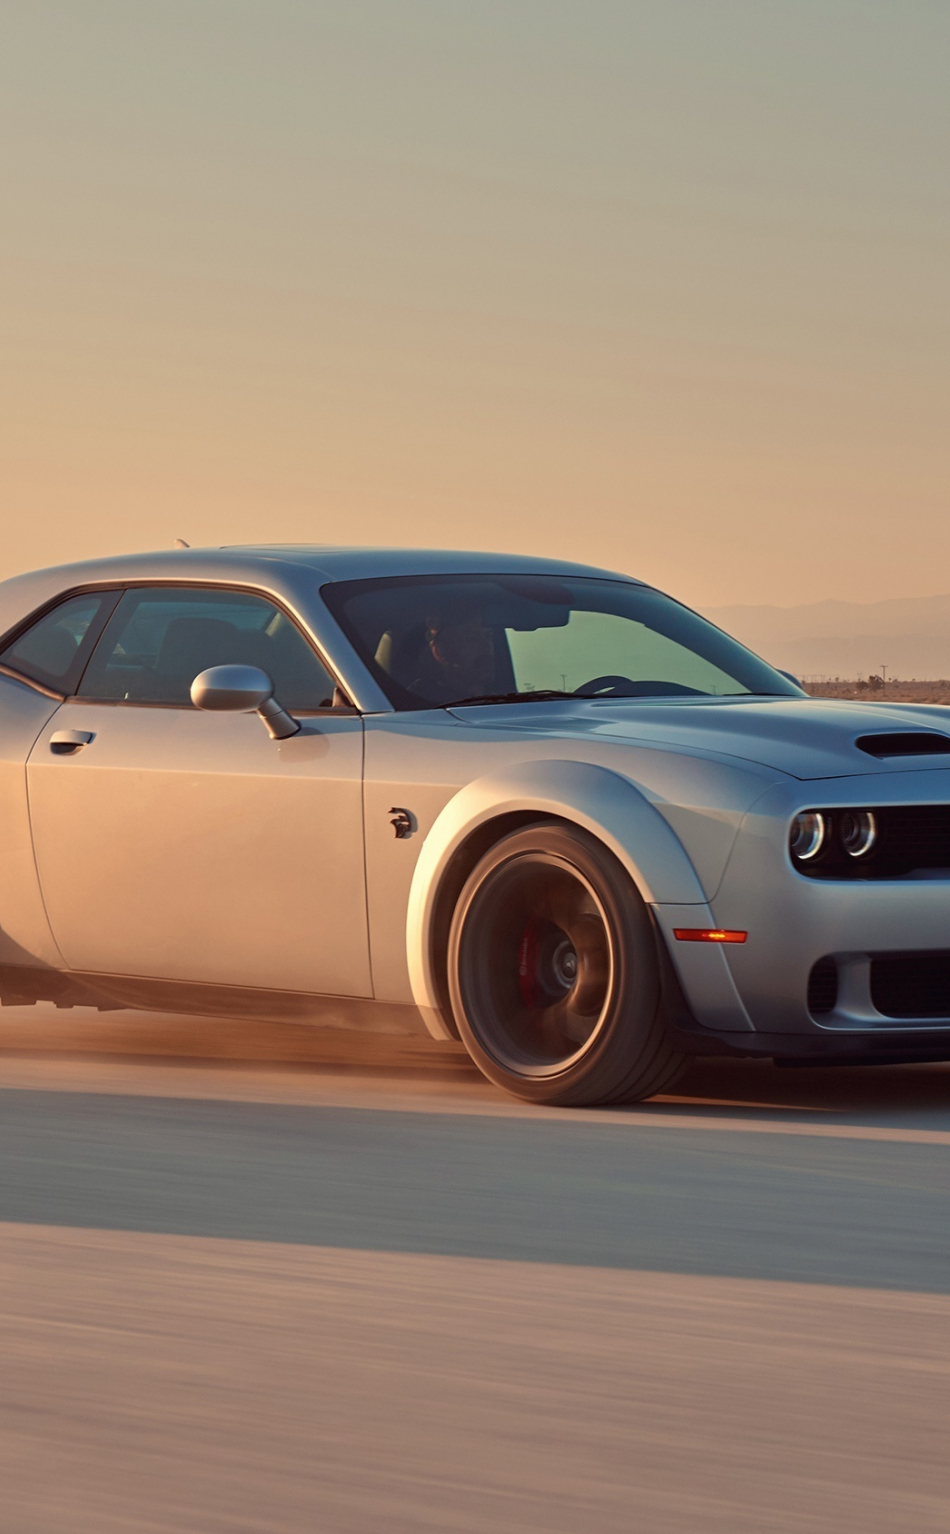 Dodge Challenger Off Road : dodge, challenger, Download, 950x1534, Wallpaper, Off-road,, Muscle, Dodge, Challenger, Iphone,, Image,, Background,